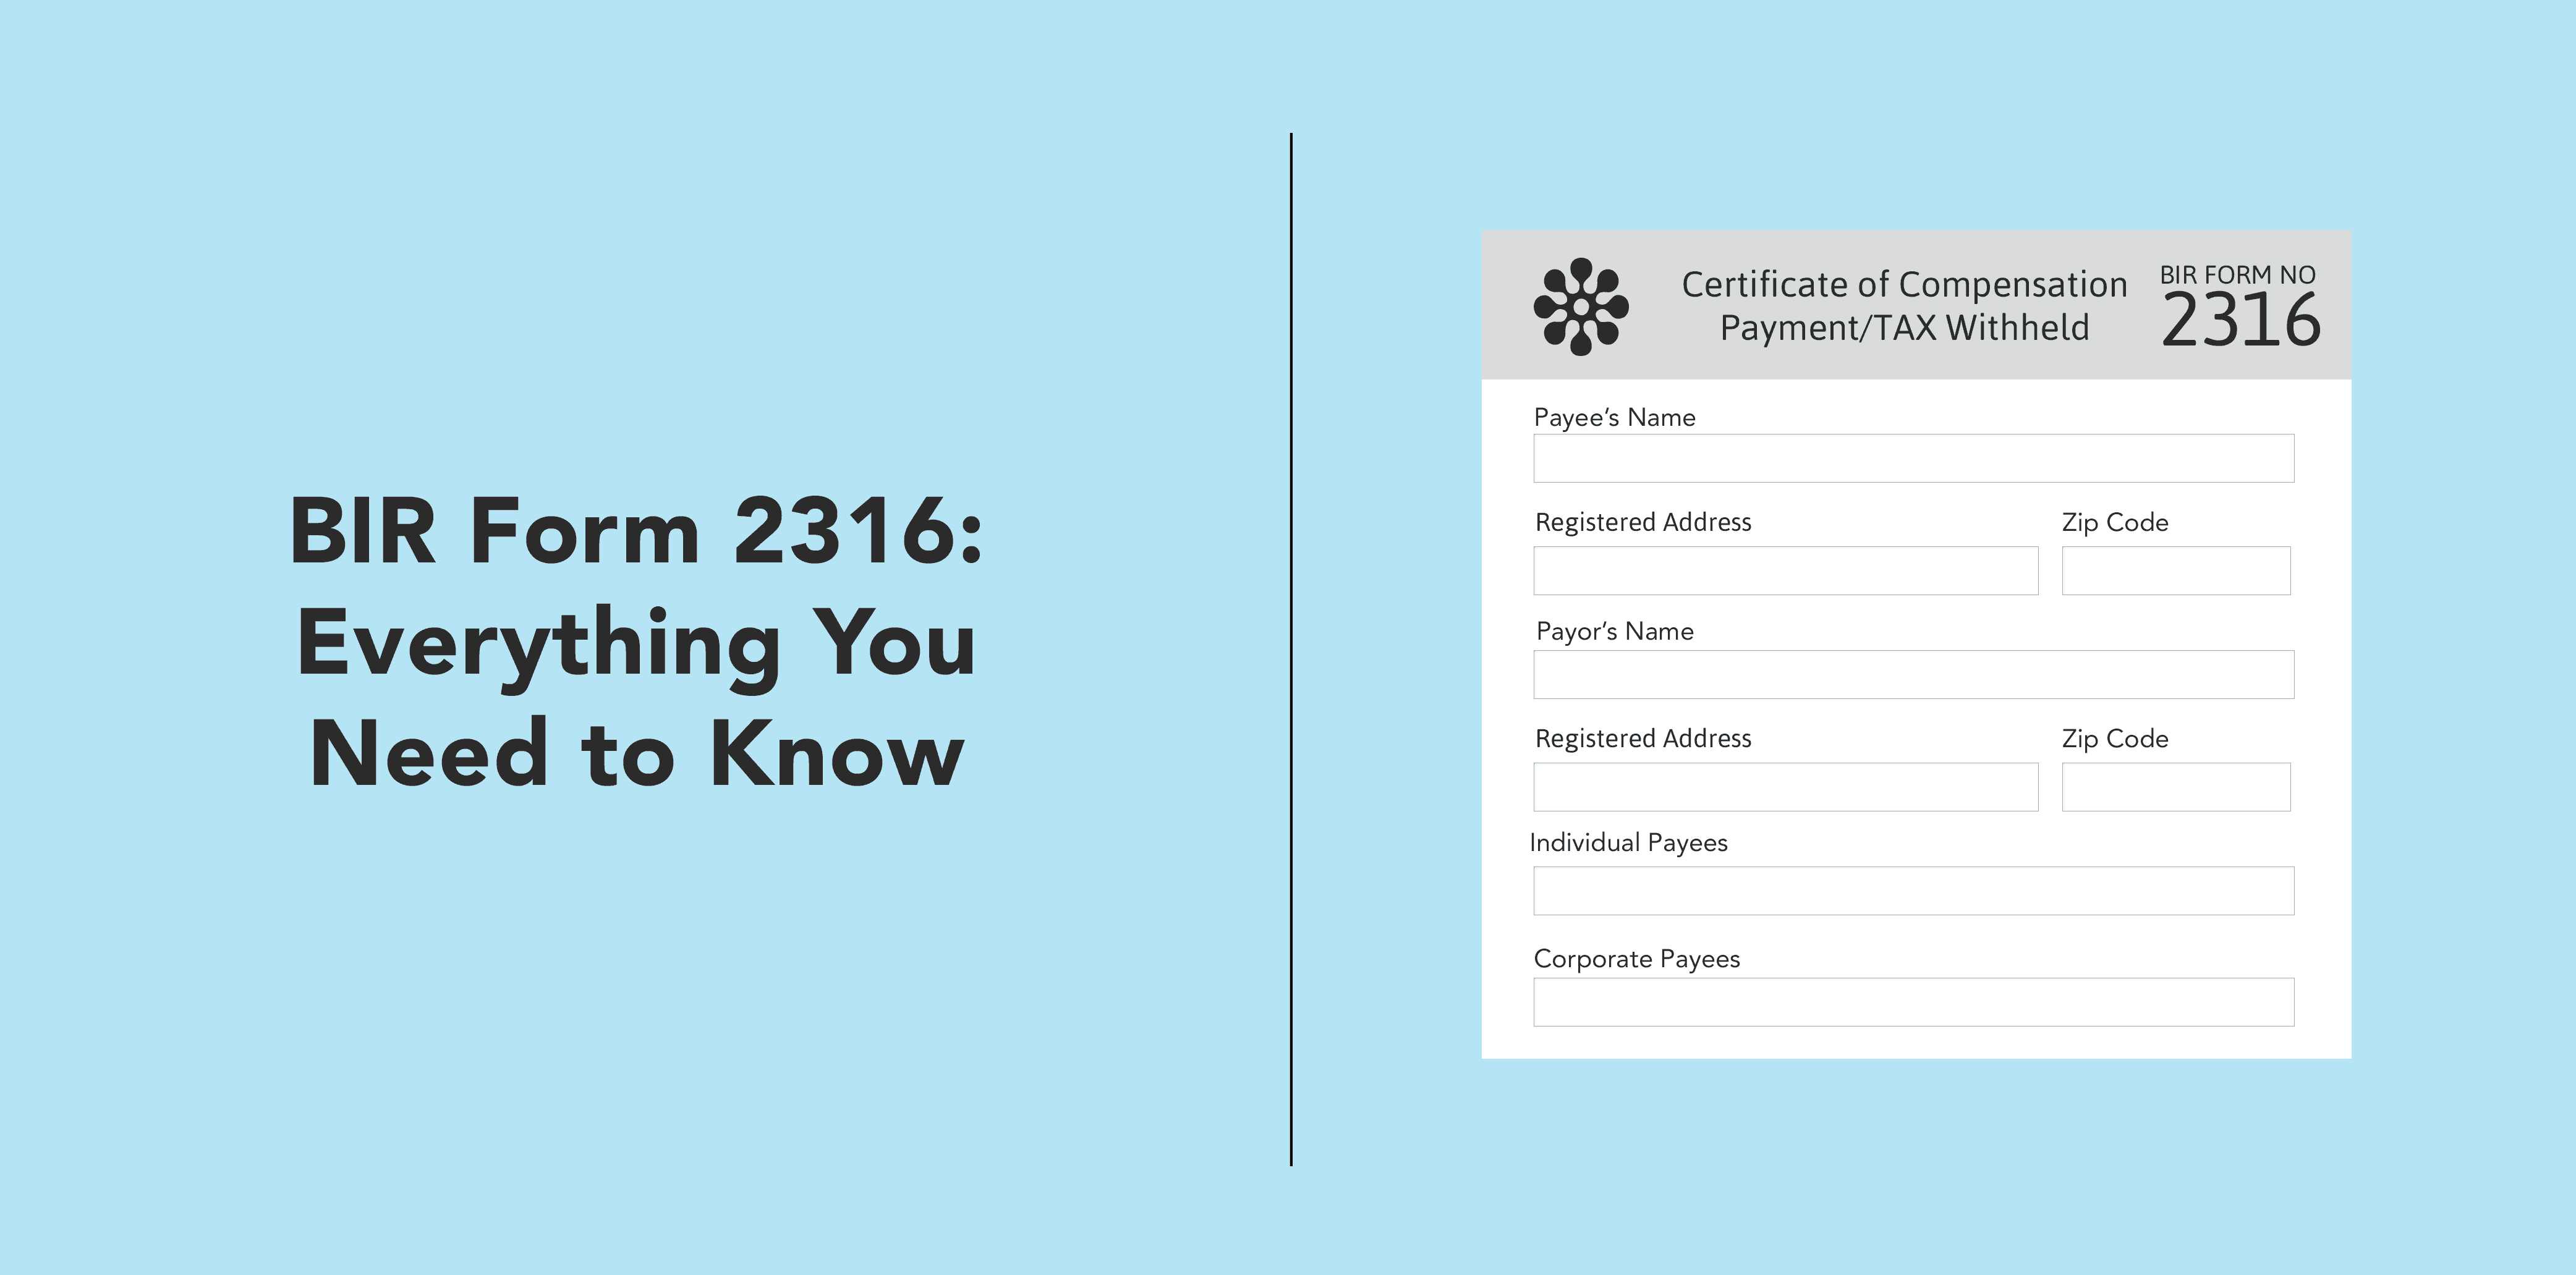 BIR Form 2316: Everything You Need to Know - FullSuite